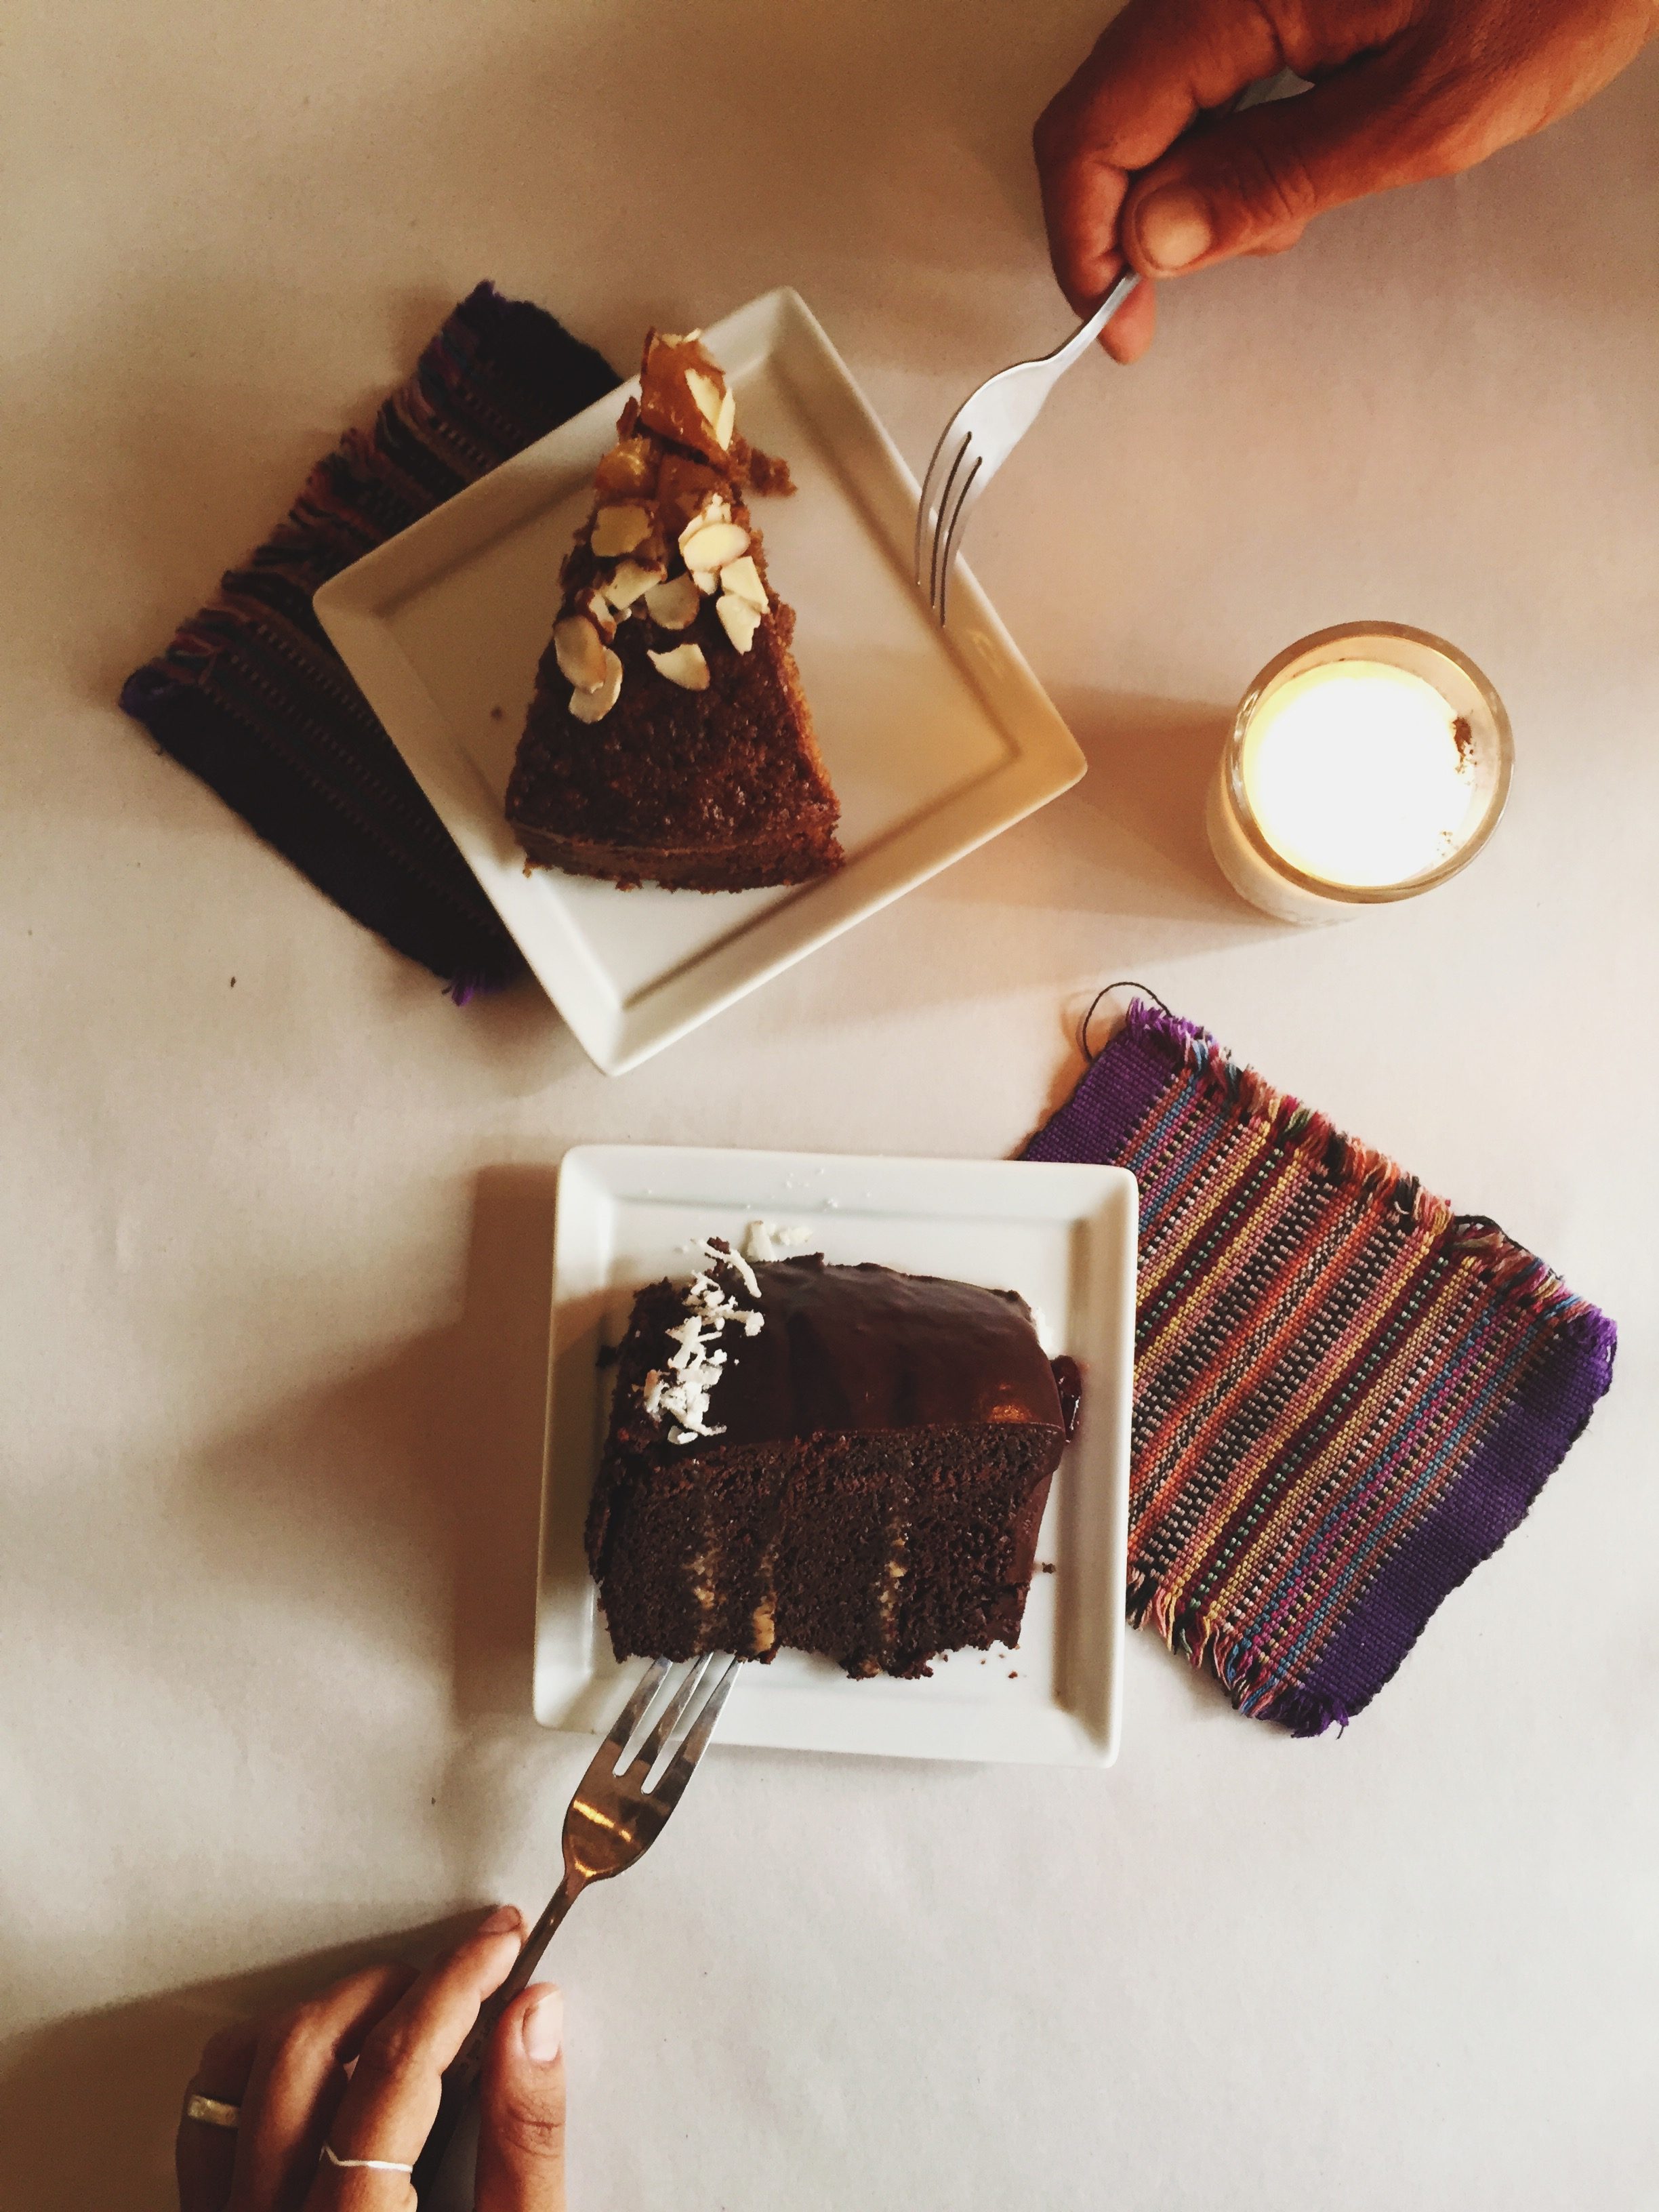 We of course were thrilled to find an organic health food store, Ola Verde, stocked with delicious local produce and offering incredible gluten free and vegan desserts!